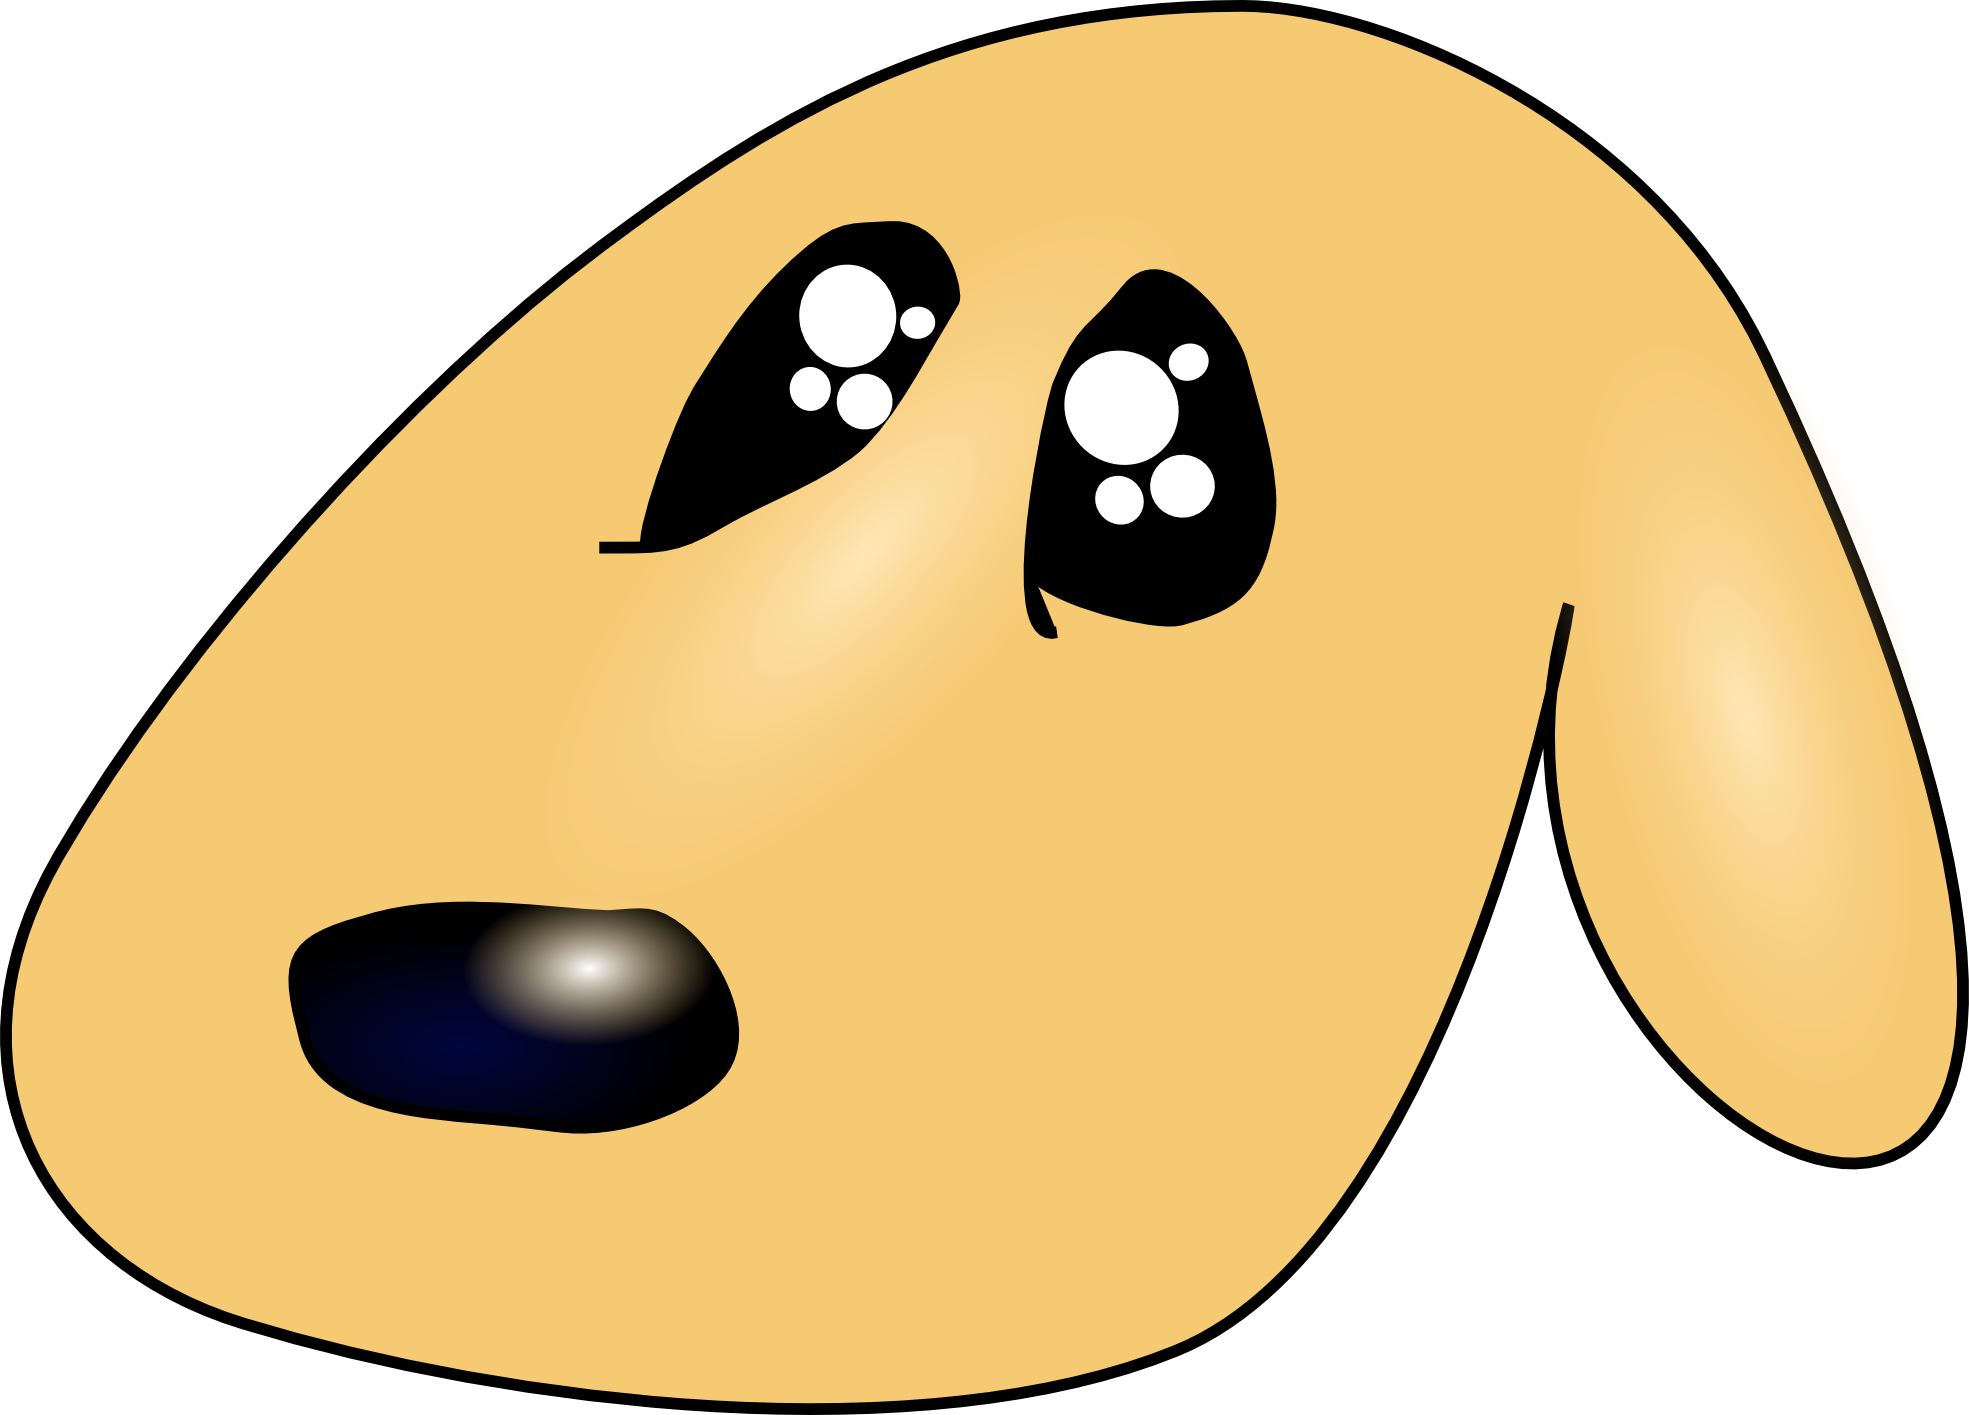 Clipart sad dog graphic transparent download Sad Dog Clipart | Clipart Panda - Free Clipart Images graphic transparent download